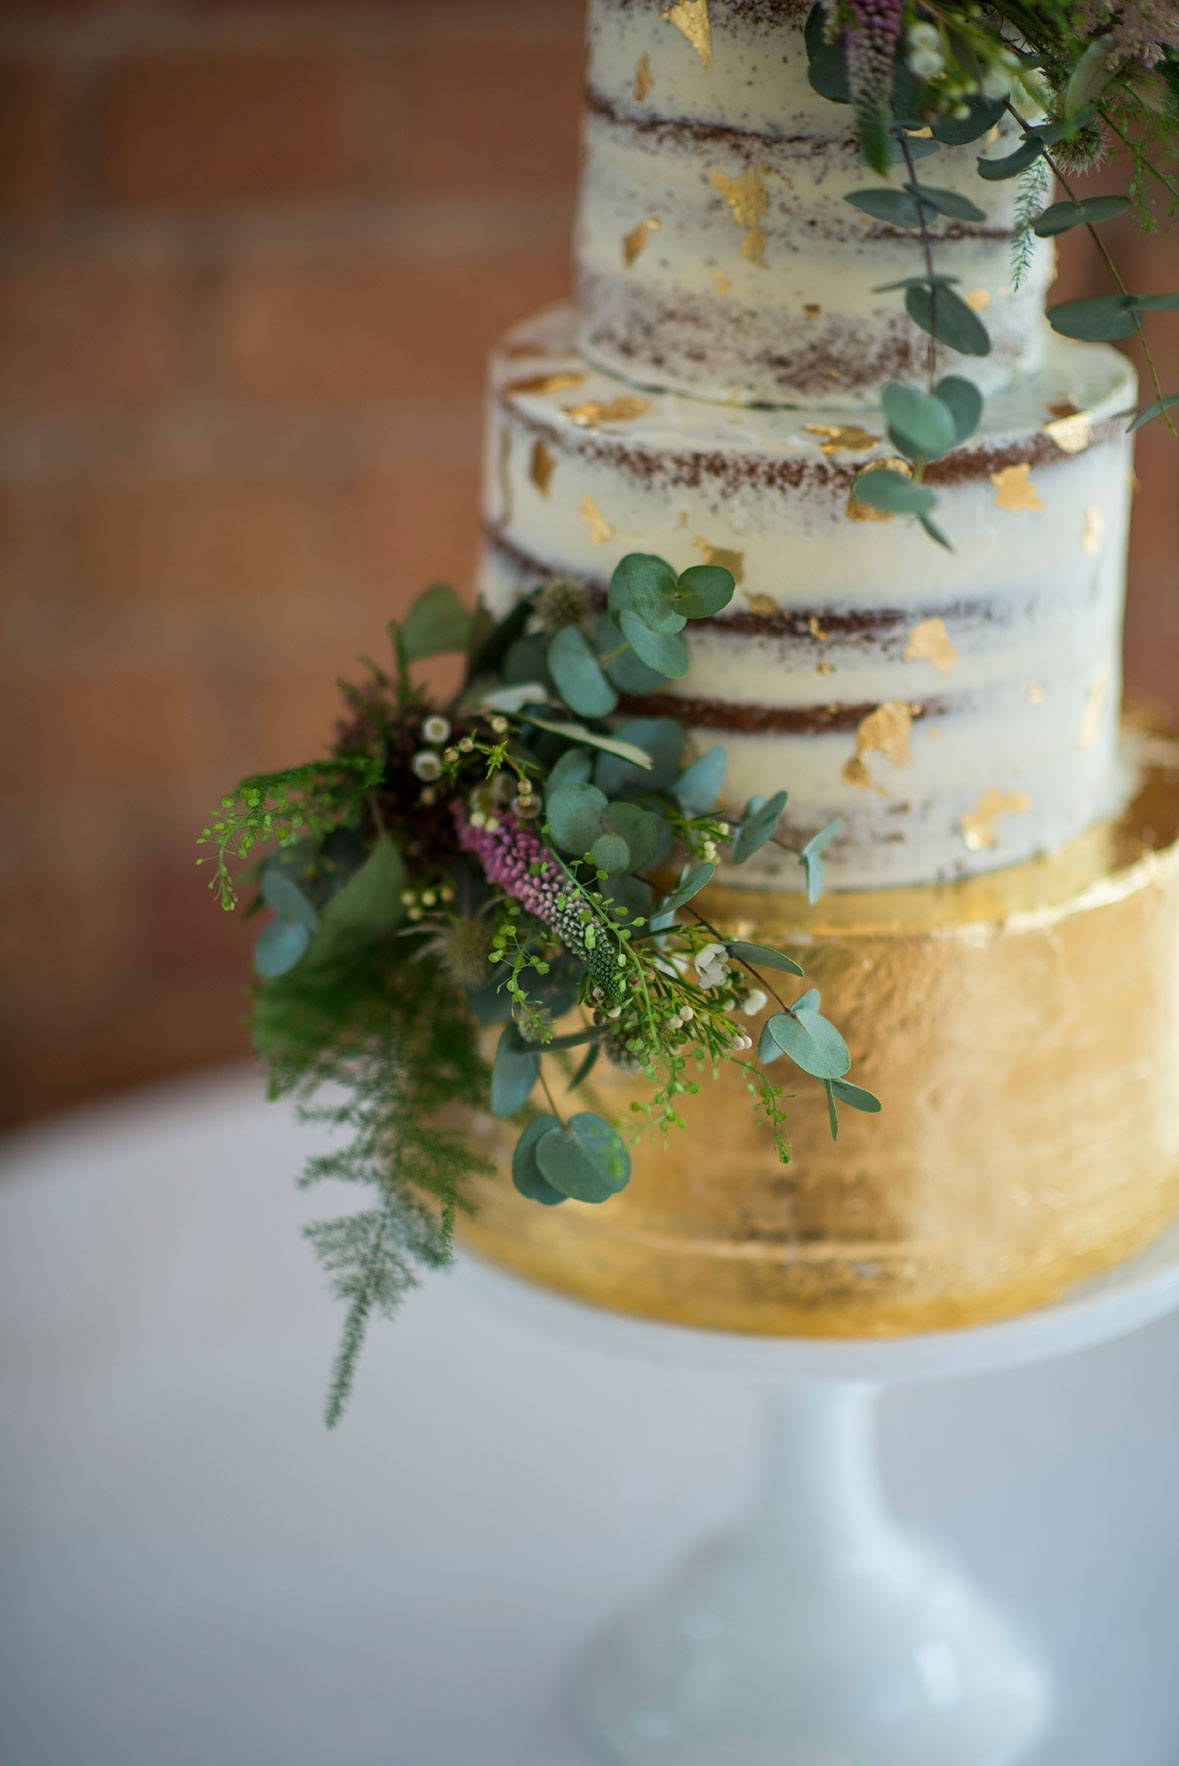 Upclose semi-naked and gold leaf cake